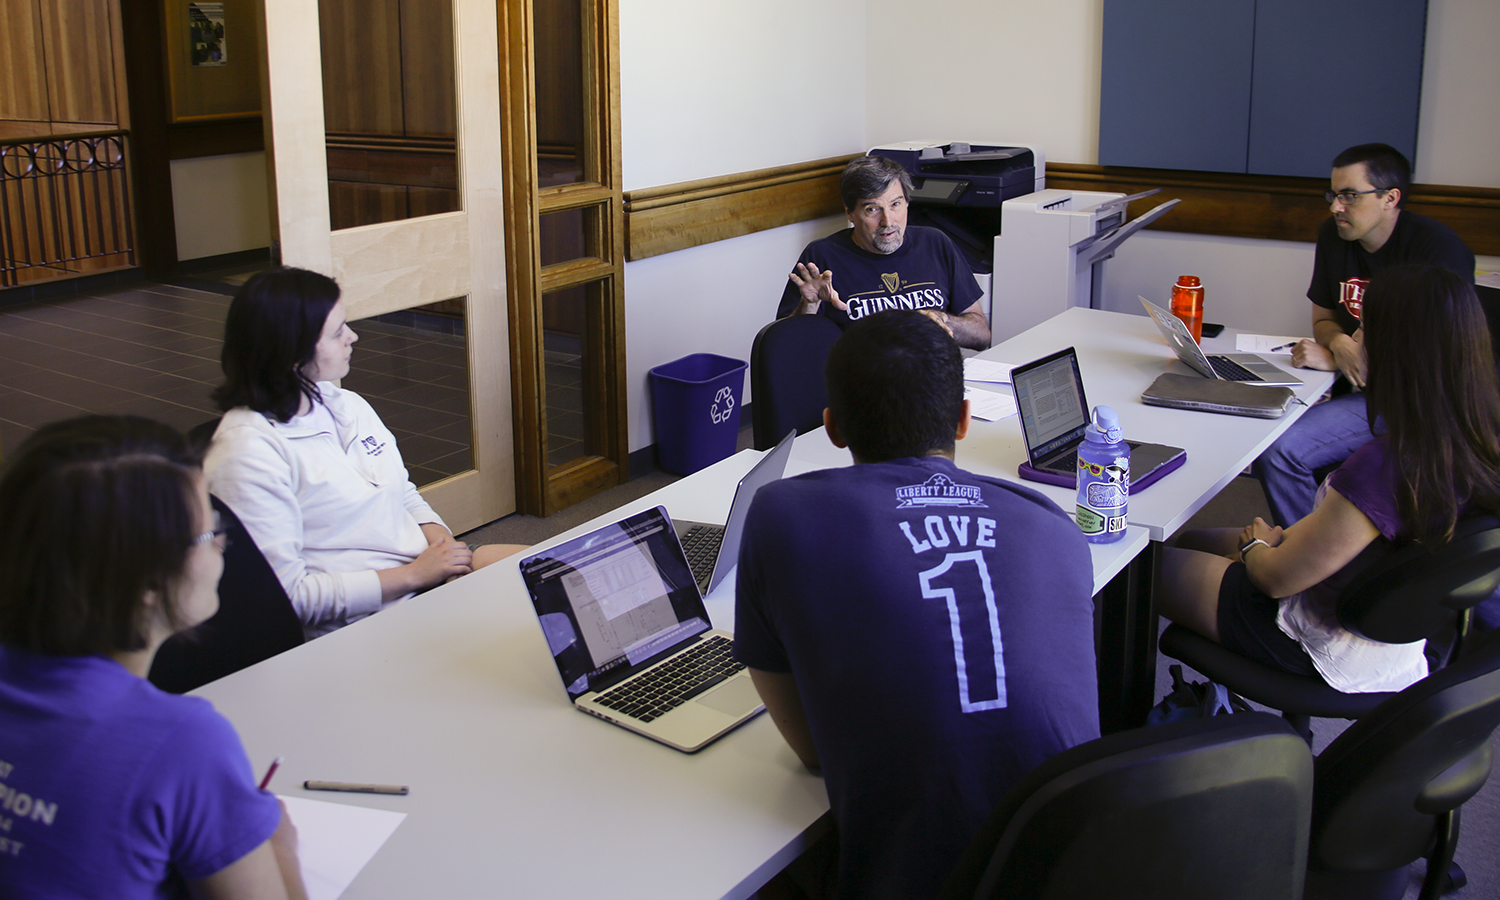 Professor of Biology David Droney and Assistant Professor of Biology Bradley Cosentino discuss recent findings during a meeting with students participating in summer research groups focused on salamaders.